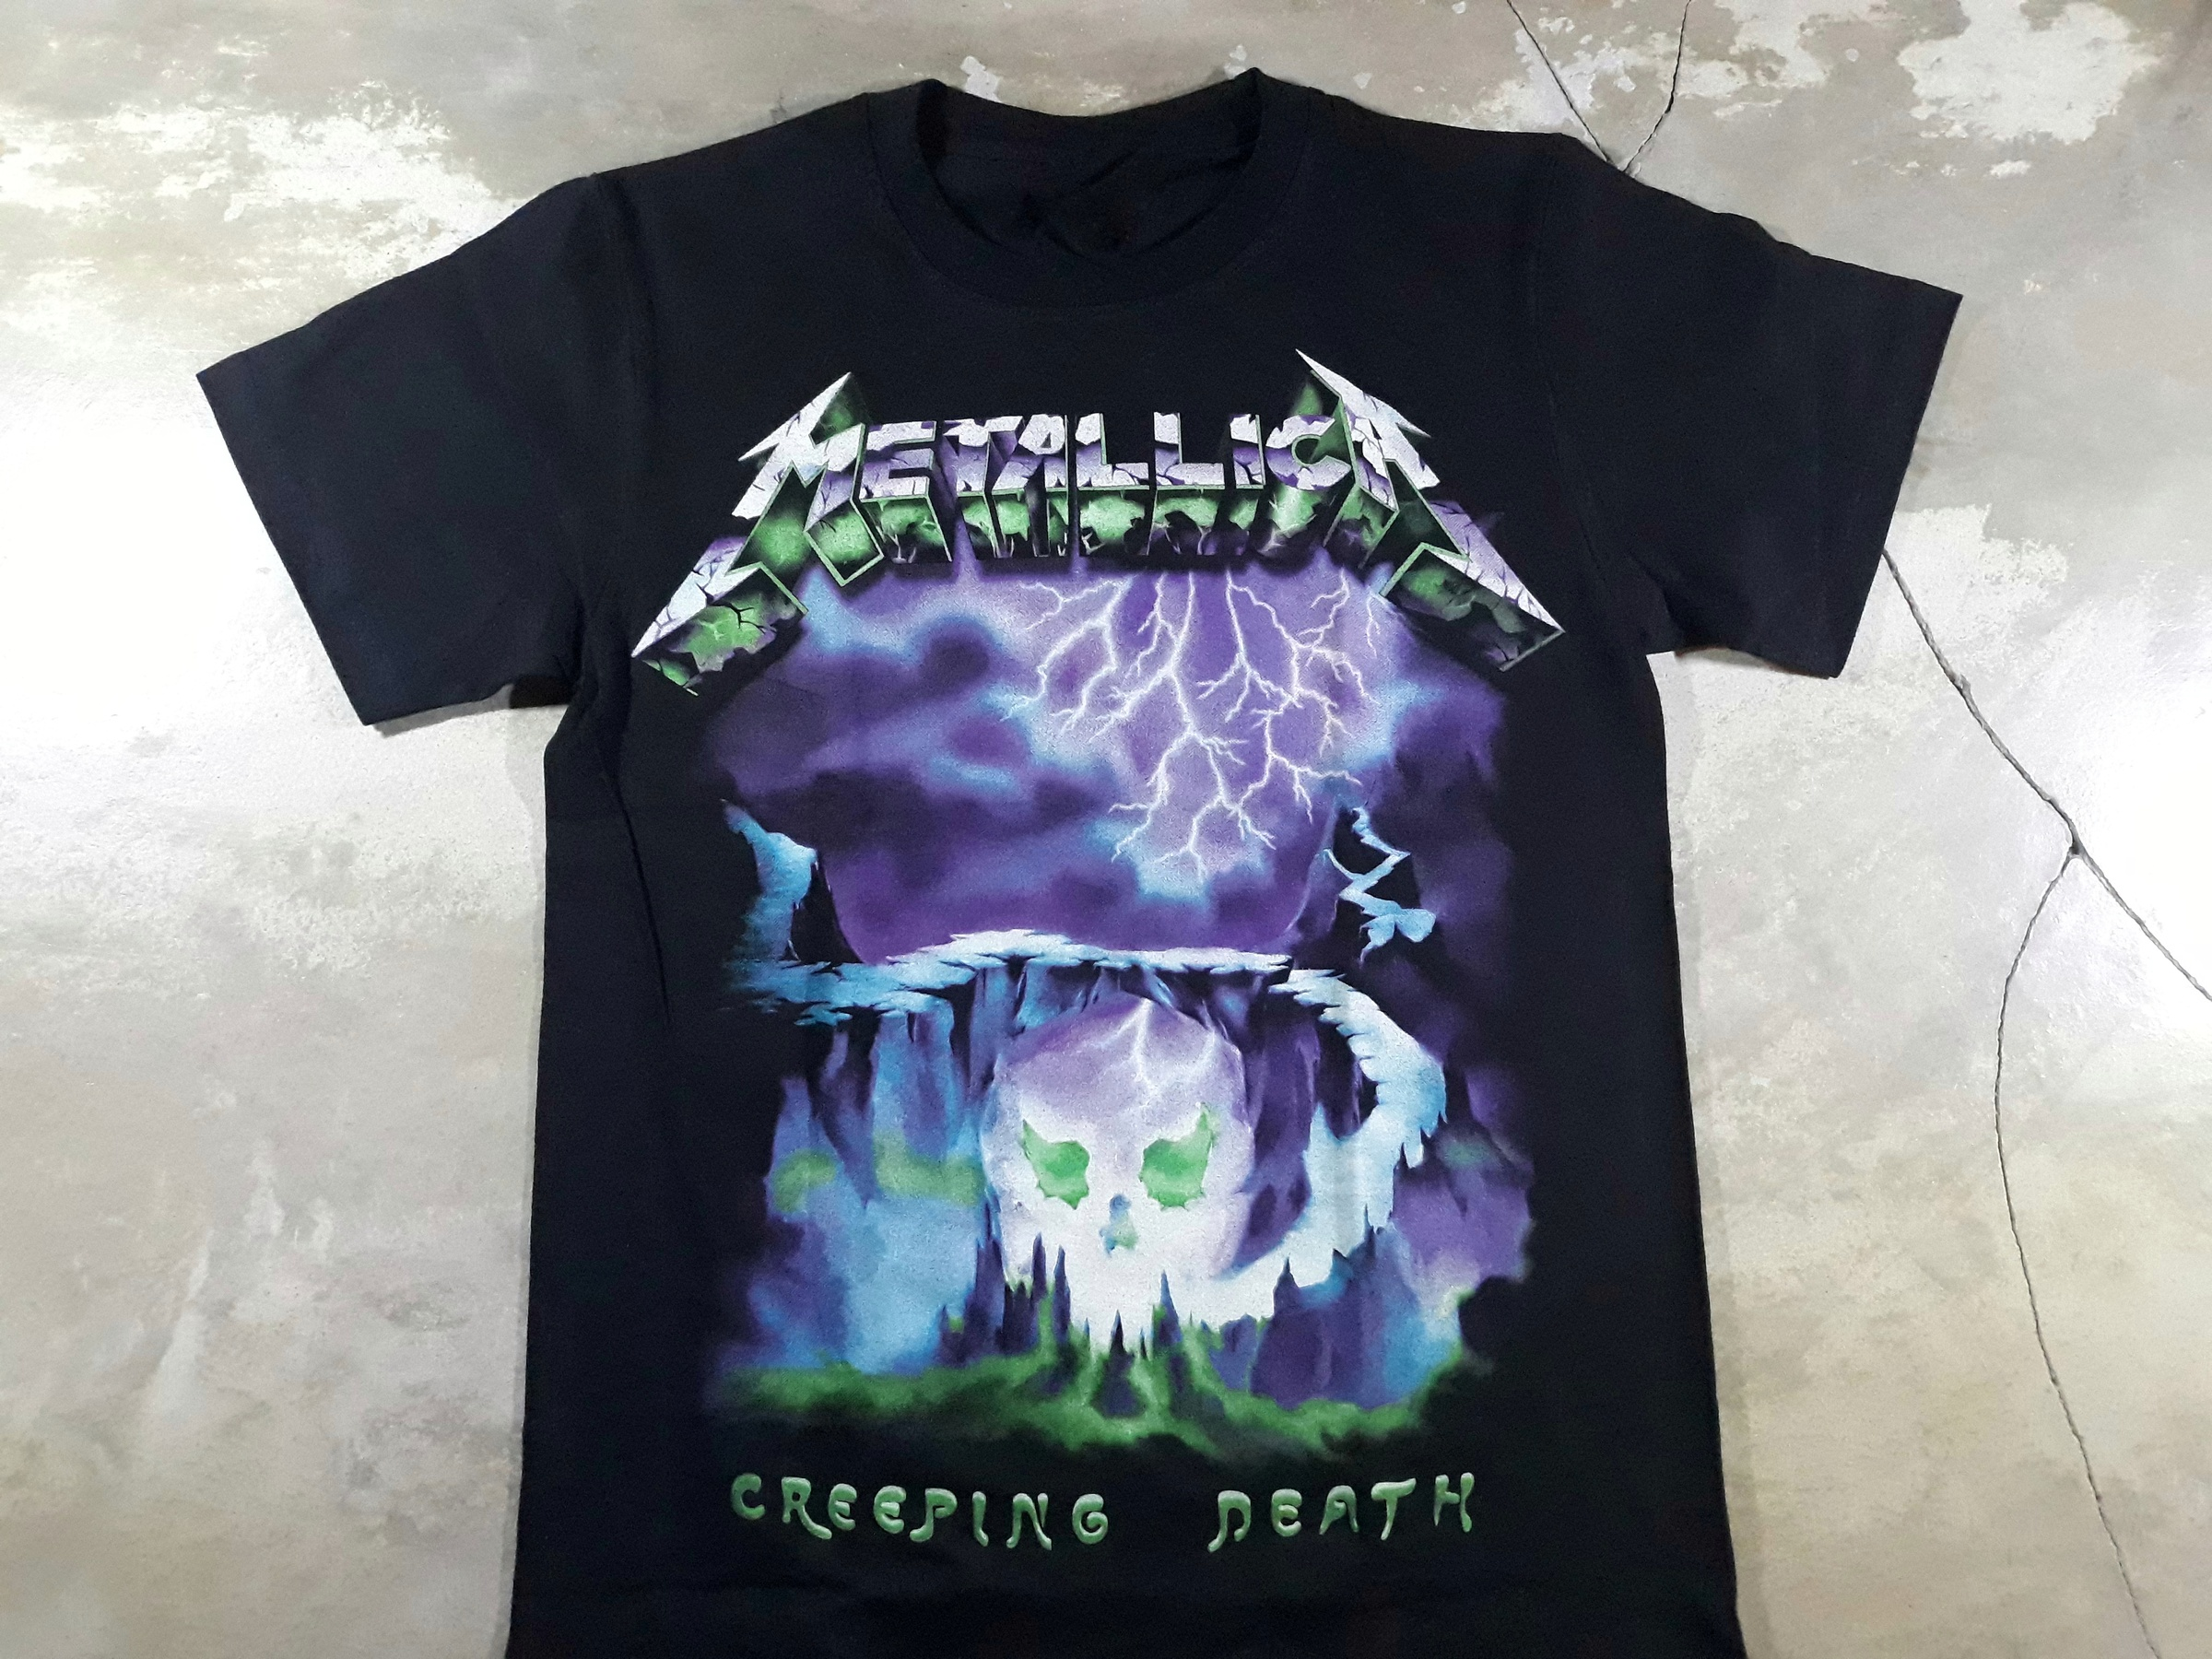 Metallica-creeping death.jpeg